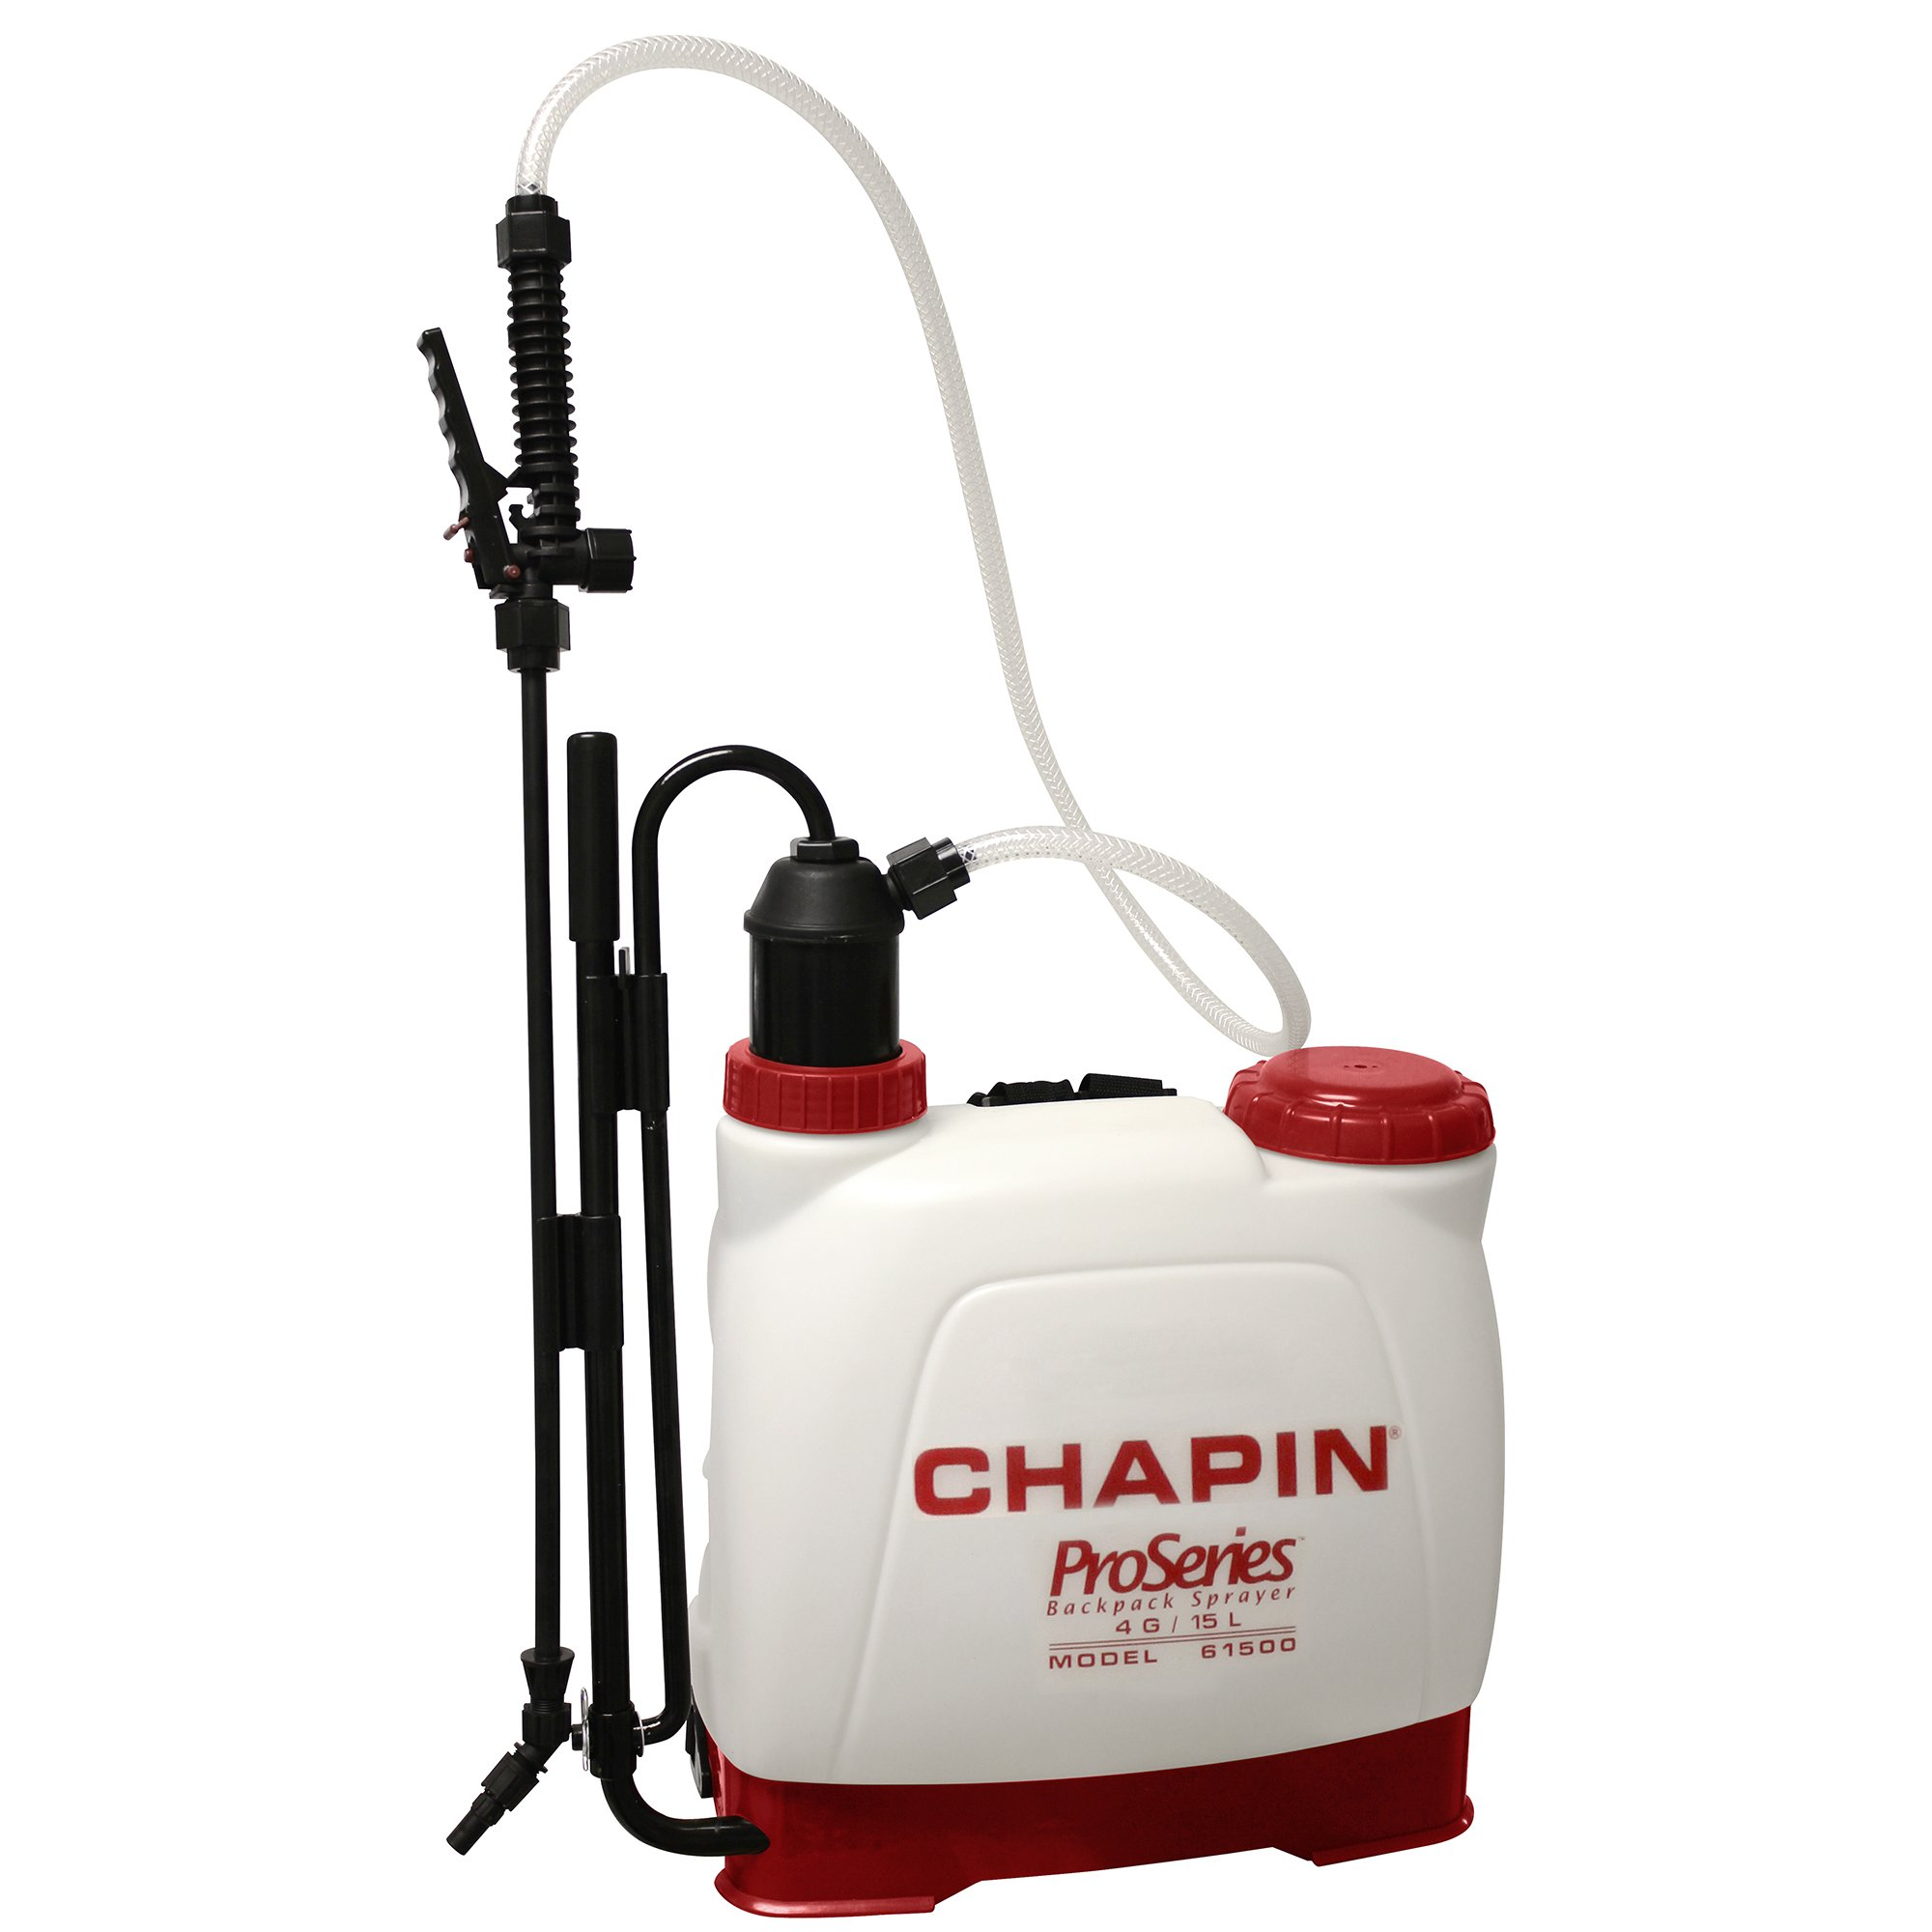 Chapin 61500 4-Gallon Euro Style Backpack Sprayer For Fertilizer, Herbicides, Pesticides and Common Household Cleaners, 4-Gallon (1 Sprayer/Package)